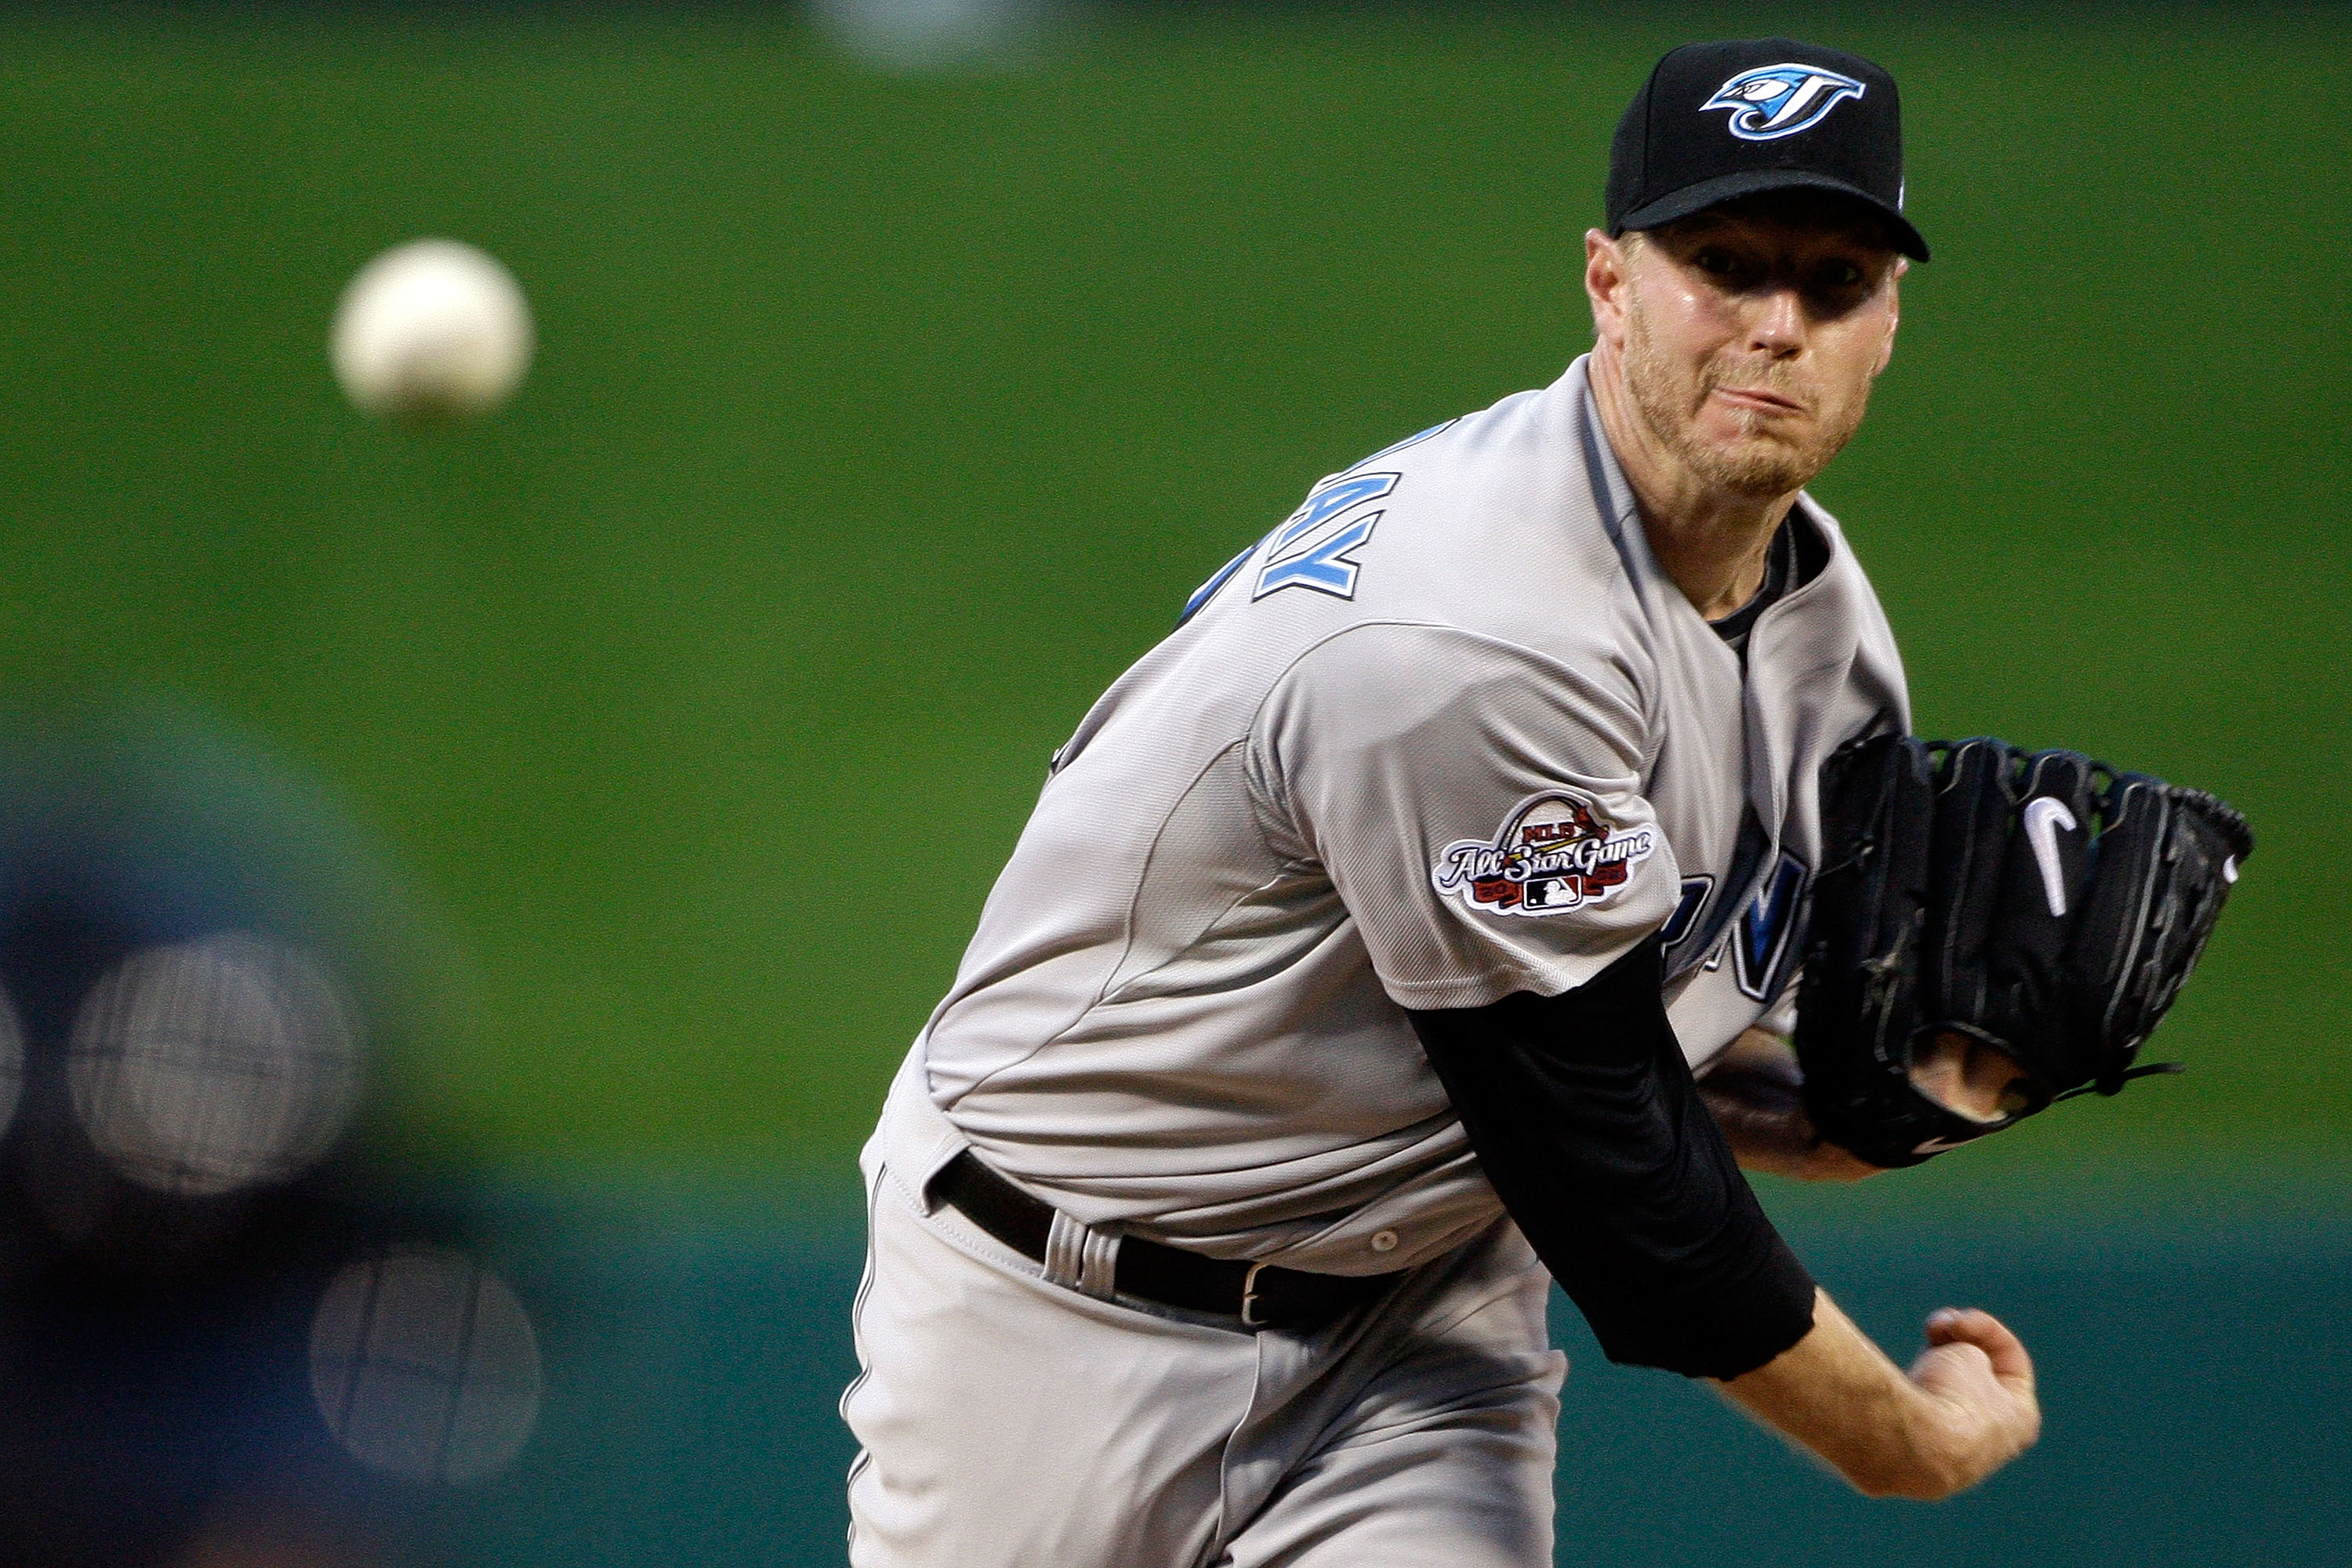 ST LOUIS, MO - JULY 14: American League All-Star Roy Halladay #32 of the Toronto Blue Jays pitches during the 2009 MLB All-Star Game against the National League at Busch Stadium on July 14, 2009 in St Louis, Missouri. (Photo by Morry Gash-Pool/Getty Image